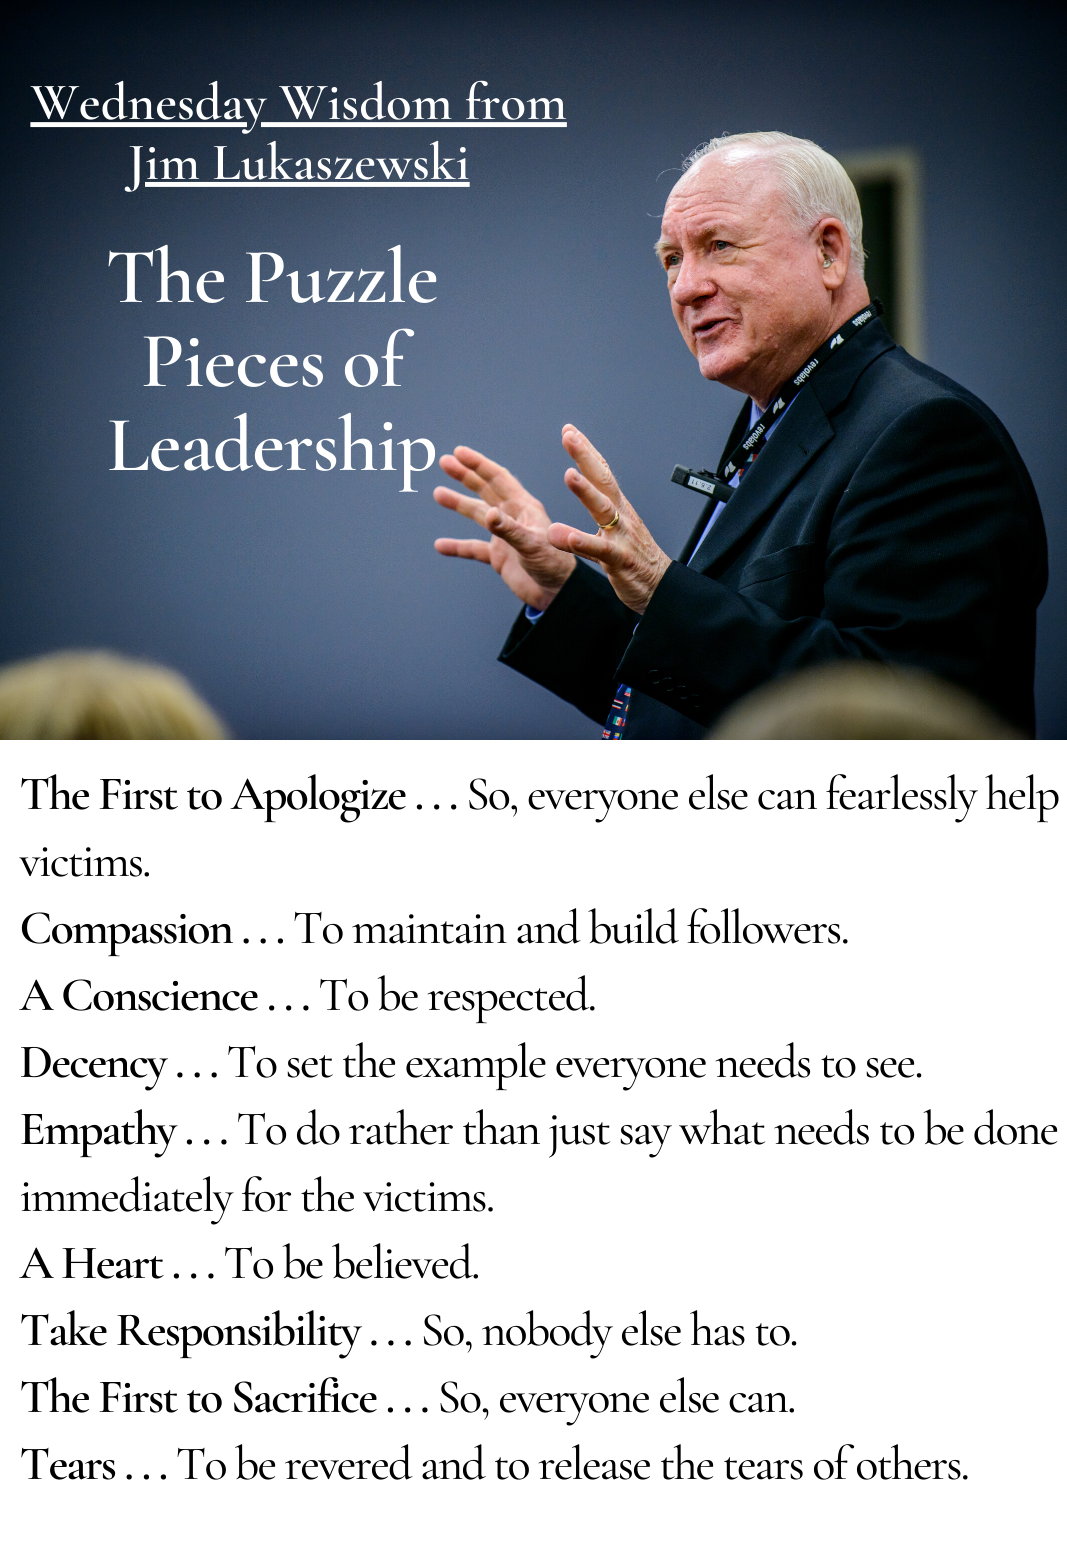 Wednesday Wisdom  2 - Puzzle Pieces of Leadership